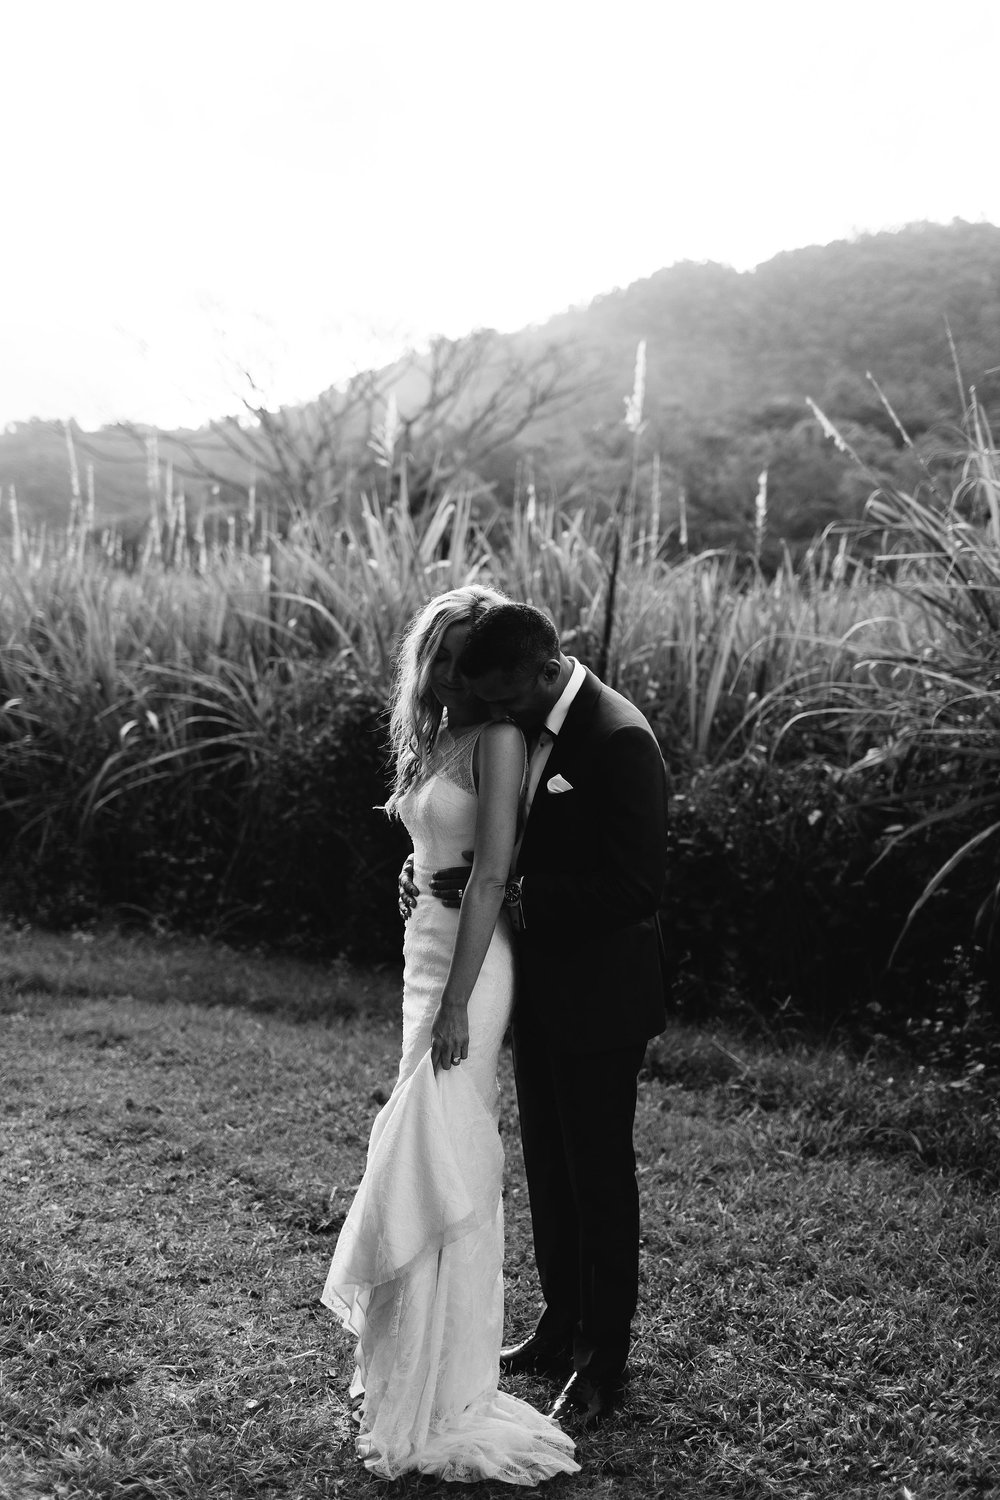 wedding_photography_port_douglas_0163-min.jpg